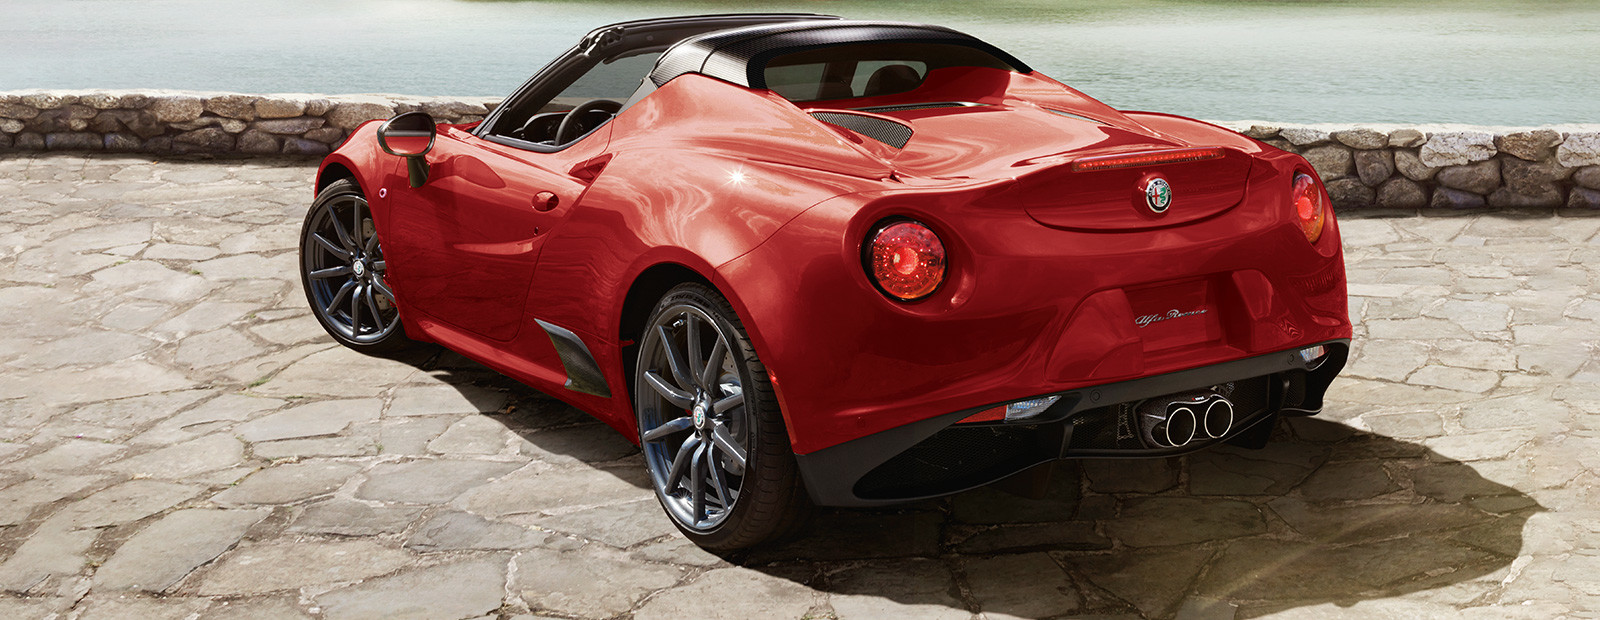 Alfa-Romeo-4C-spider-rear-side-profile-with-red-exterior_expanded_ba975595897a4e8b6312a4fb967ce540-1600x620_2019-09-17.jpg